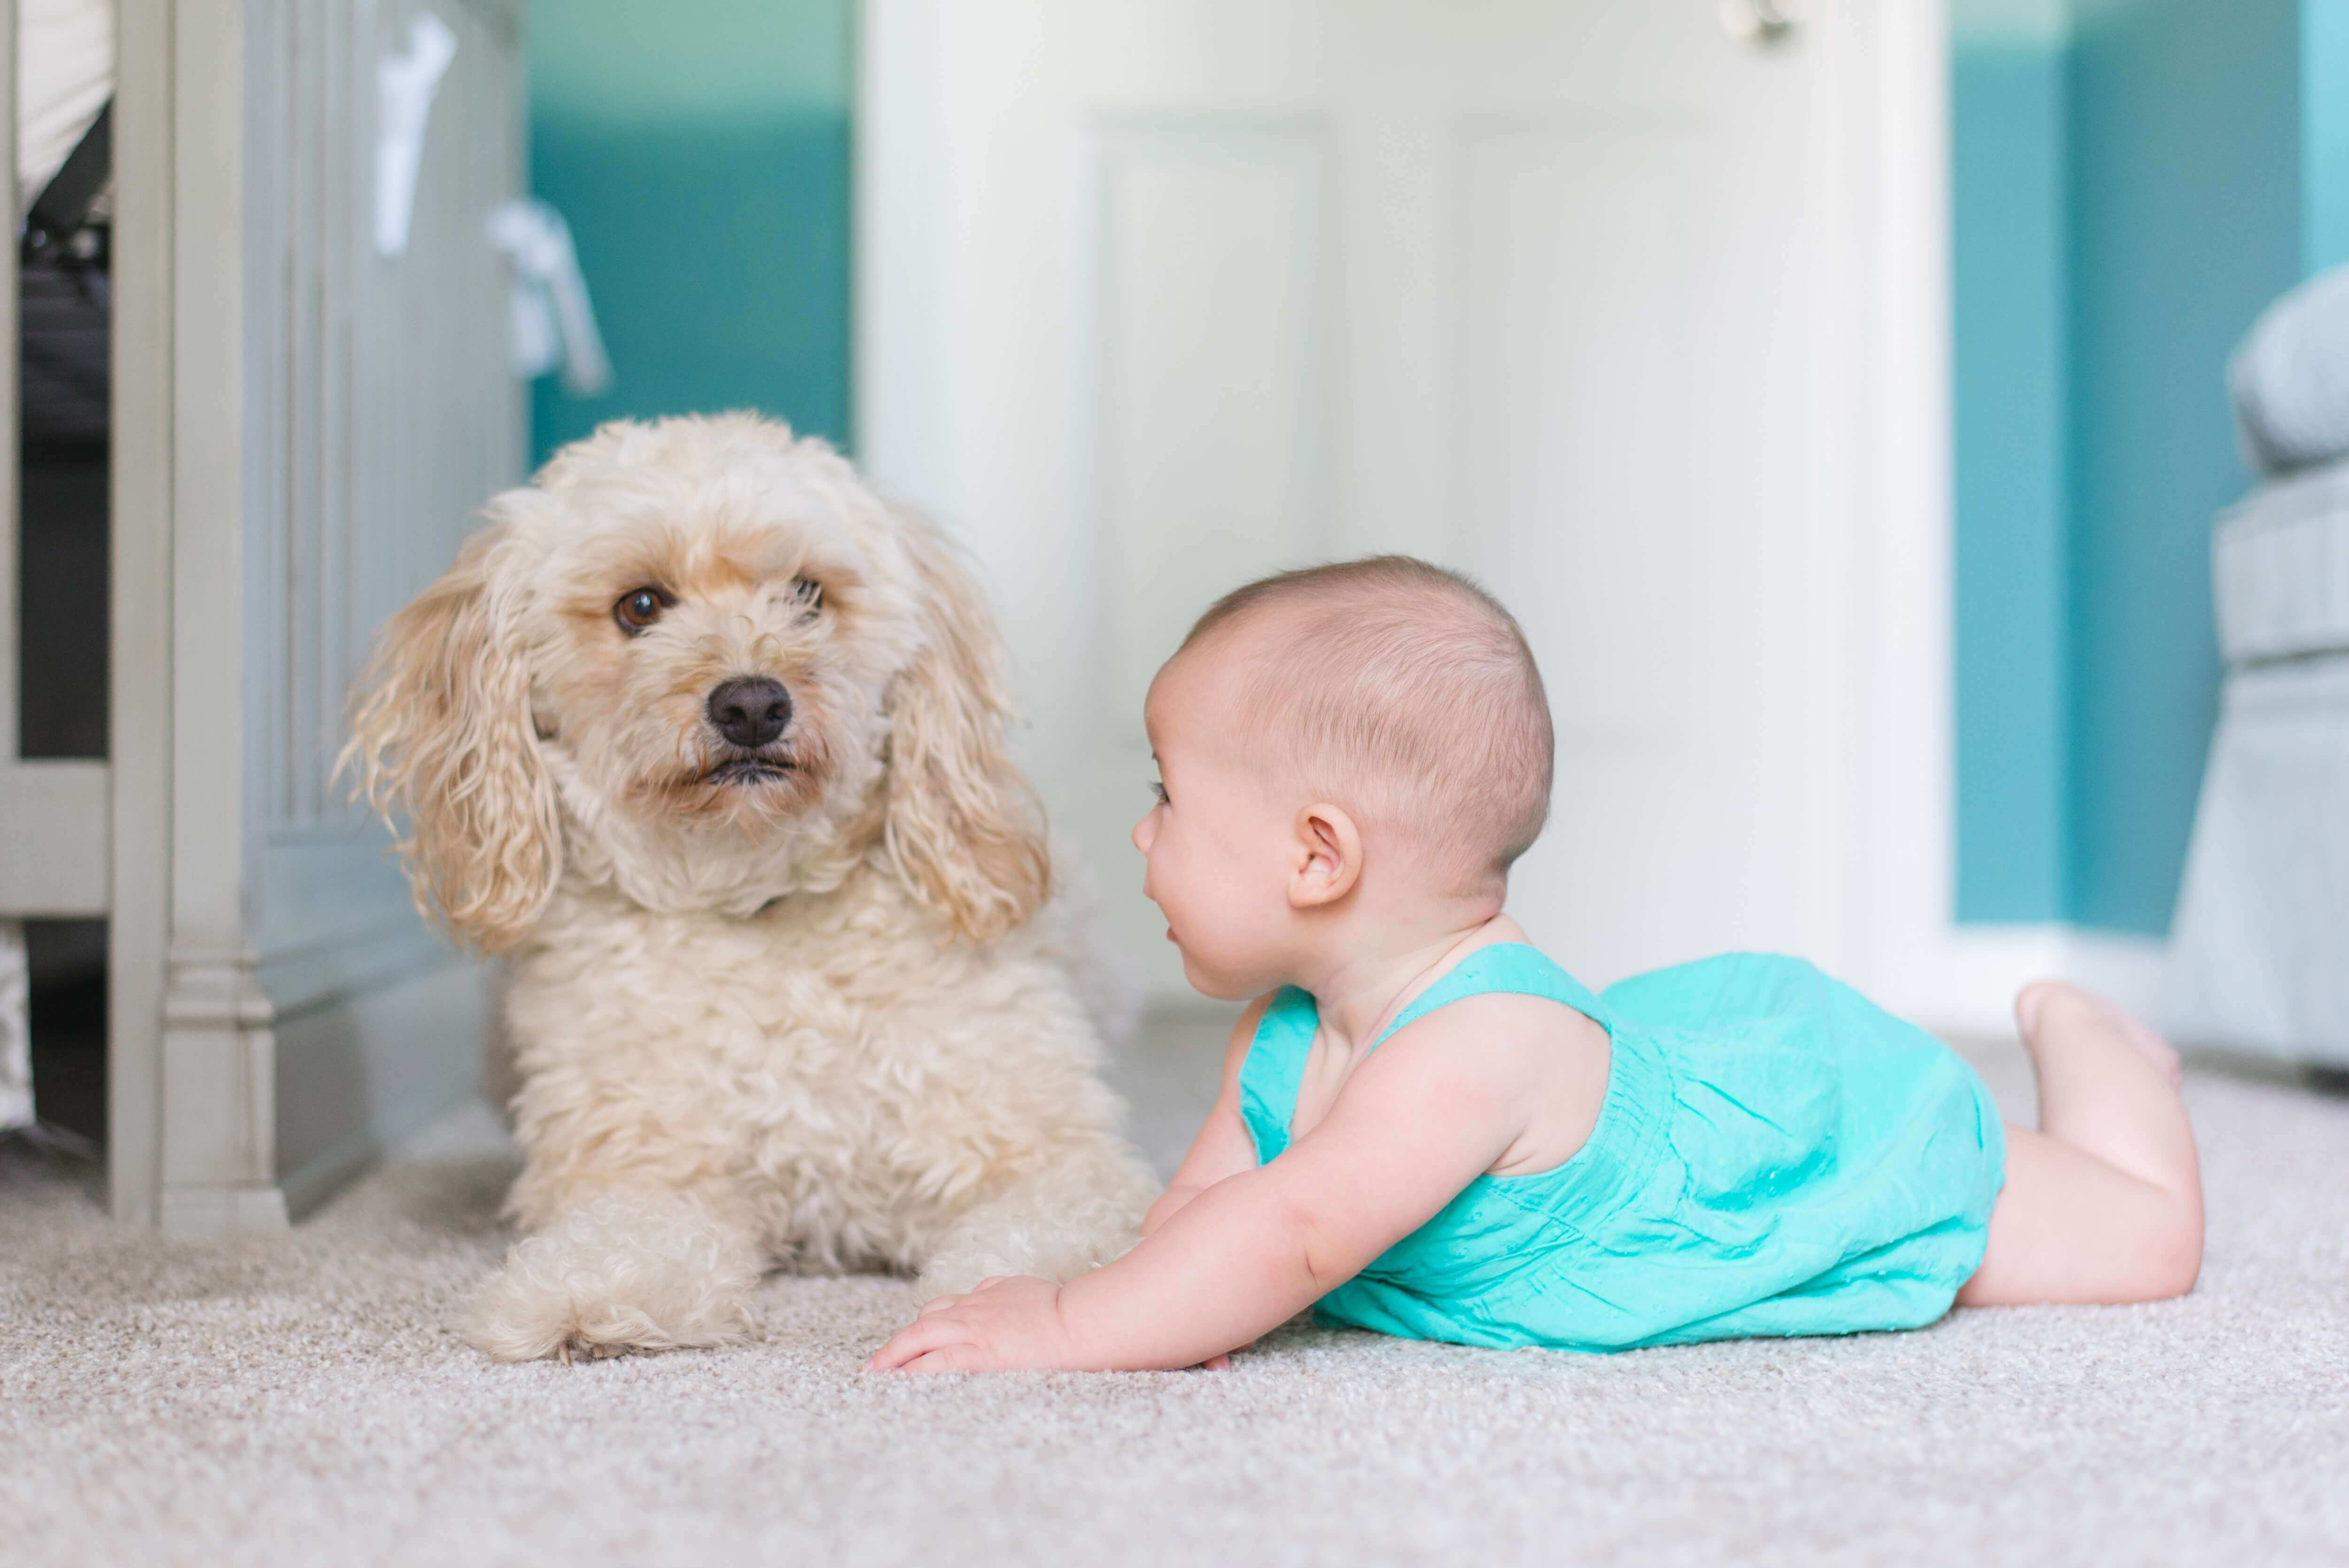 baby and dog on clean carpet